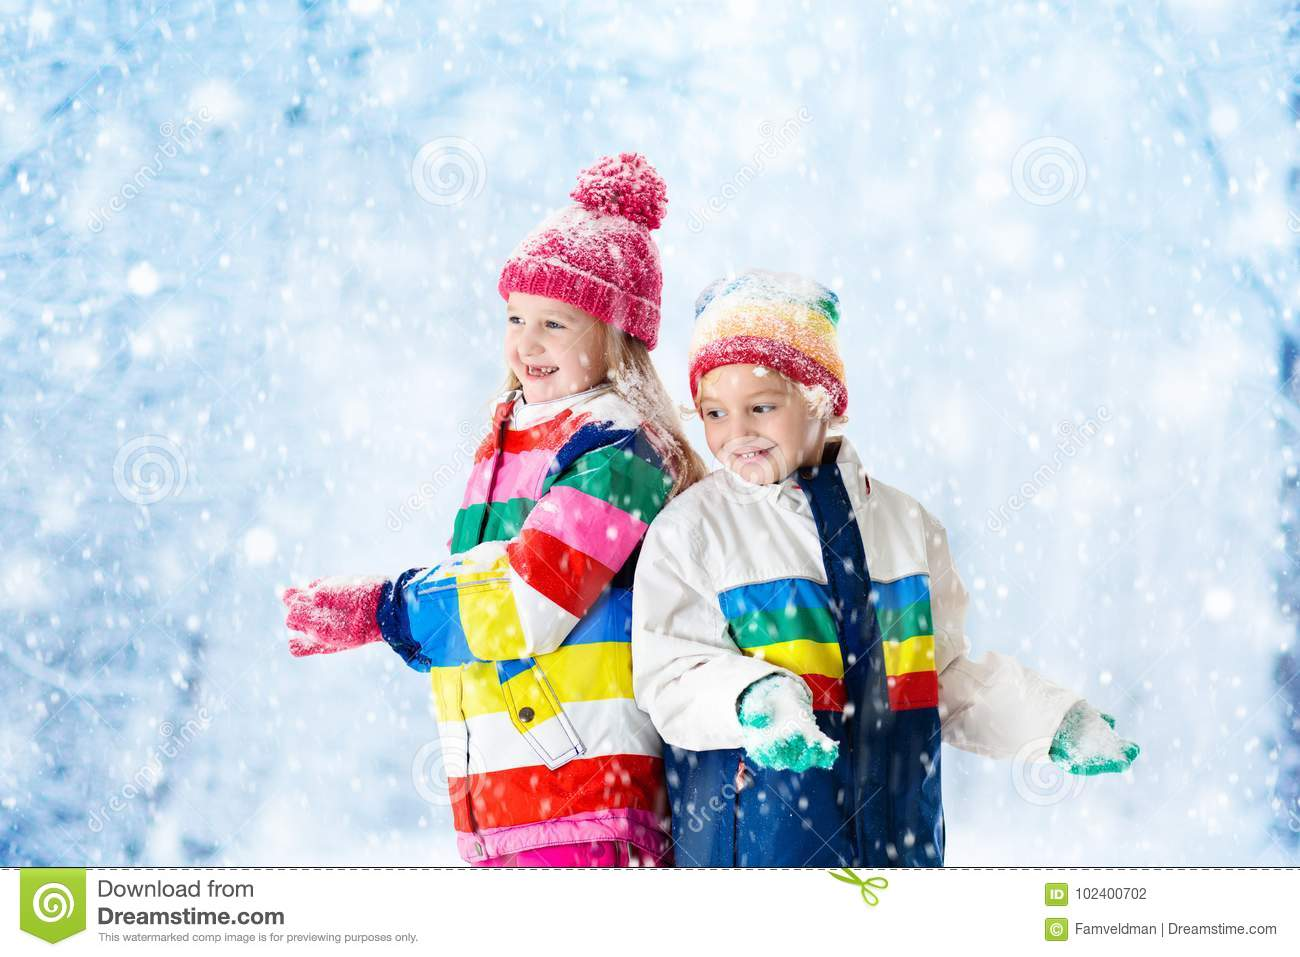 d1088d1630cd Kids Playing In Snow. Children Play Outdoors In Winter Snowfall ...